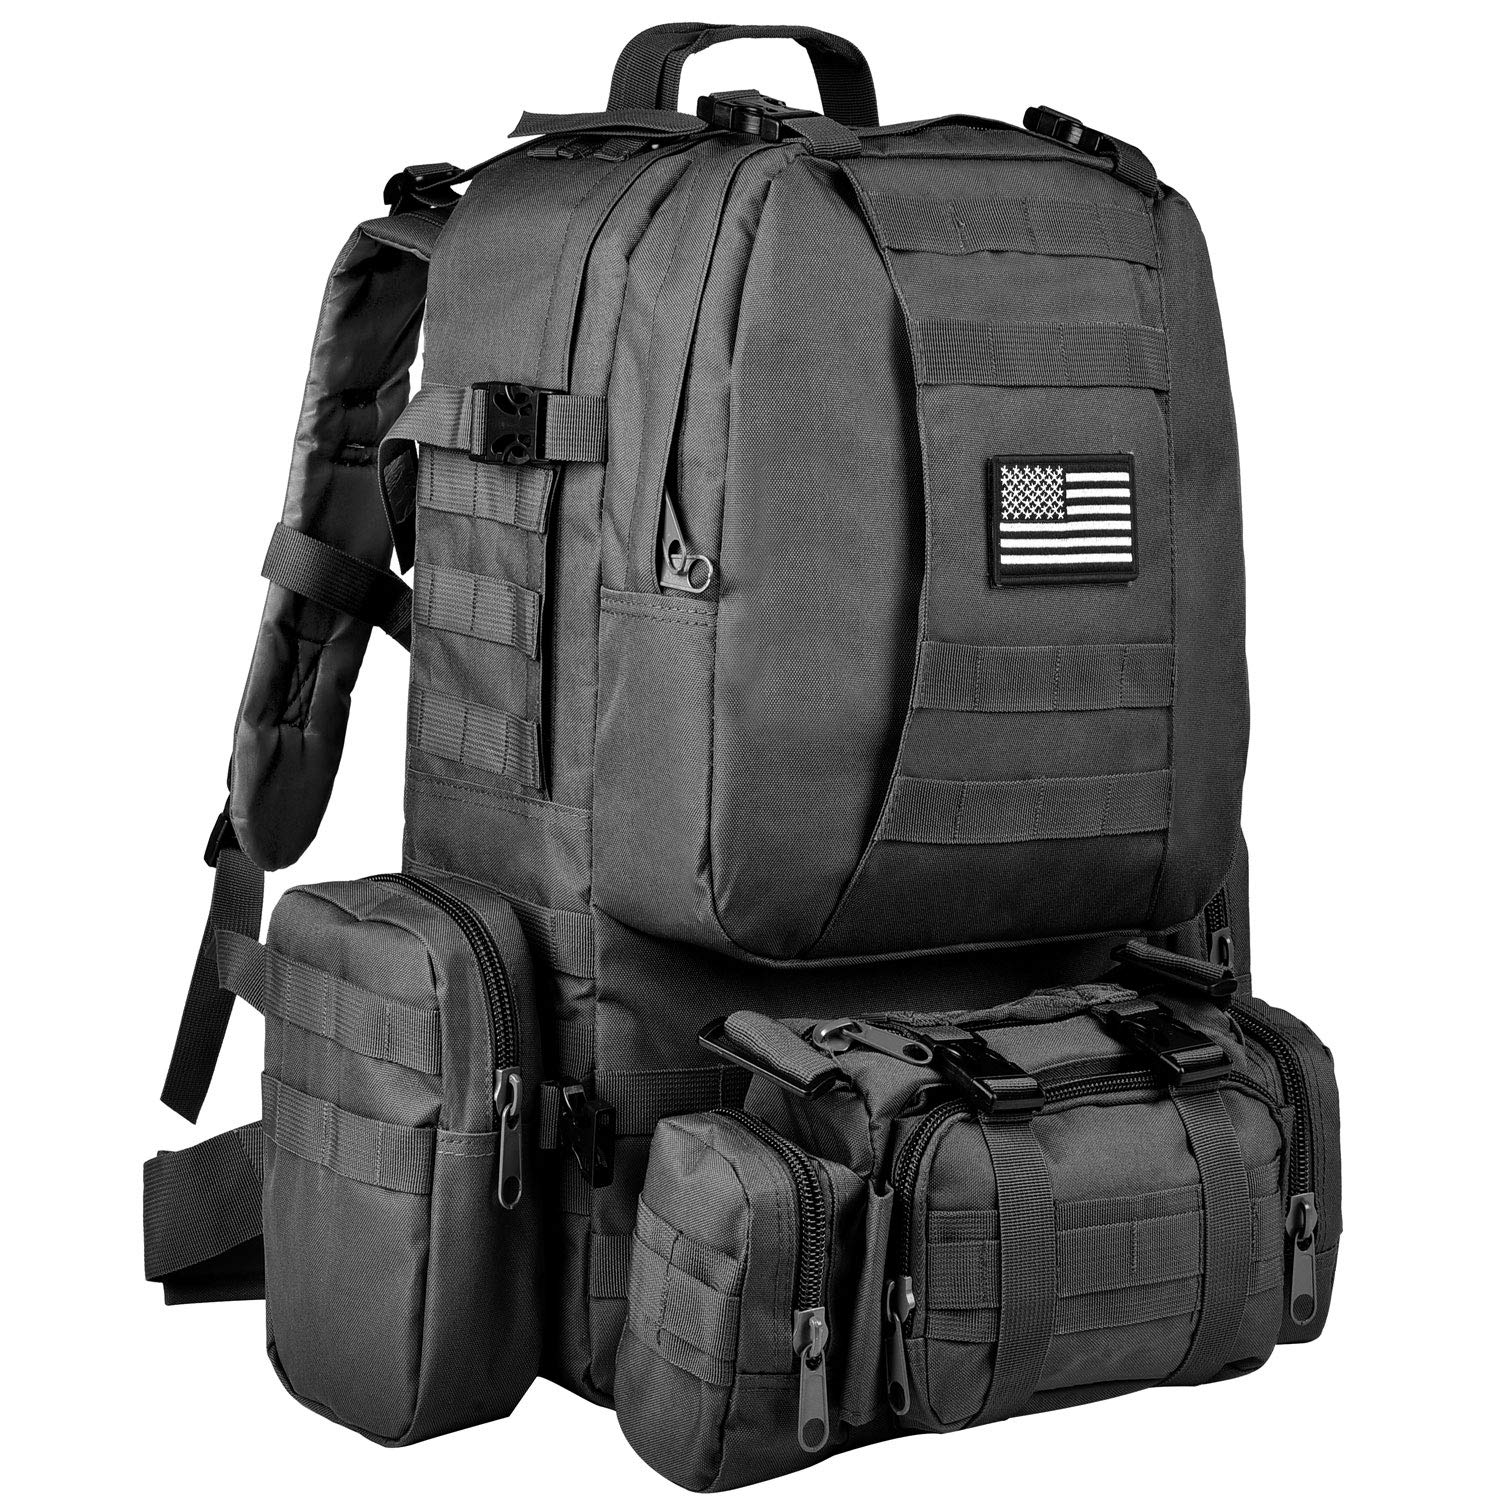 Review of CVLIFE Outdoor 60L Built-up Military Tactical Backpack Army Rucksacks 3 Day Assault Pack